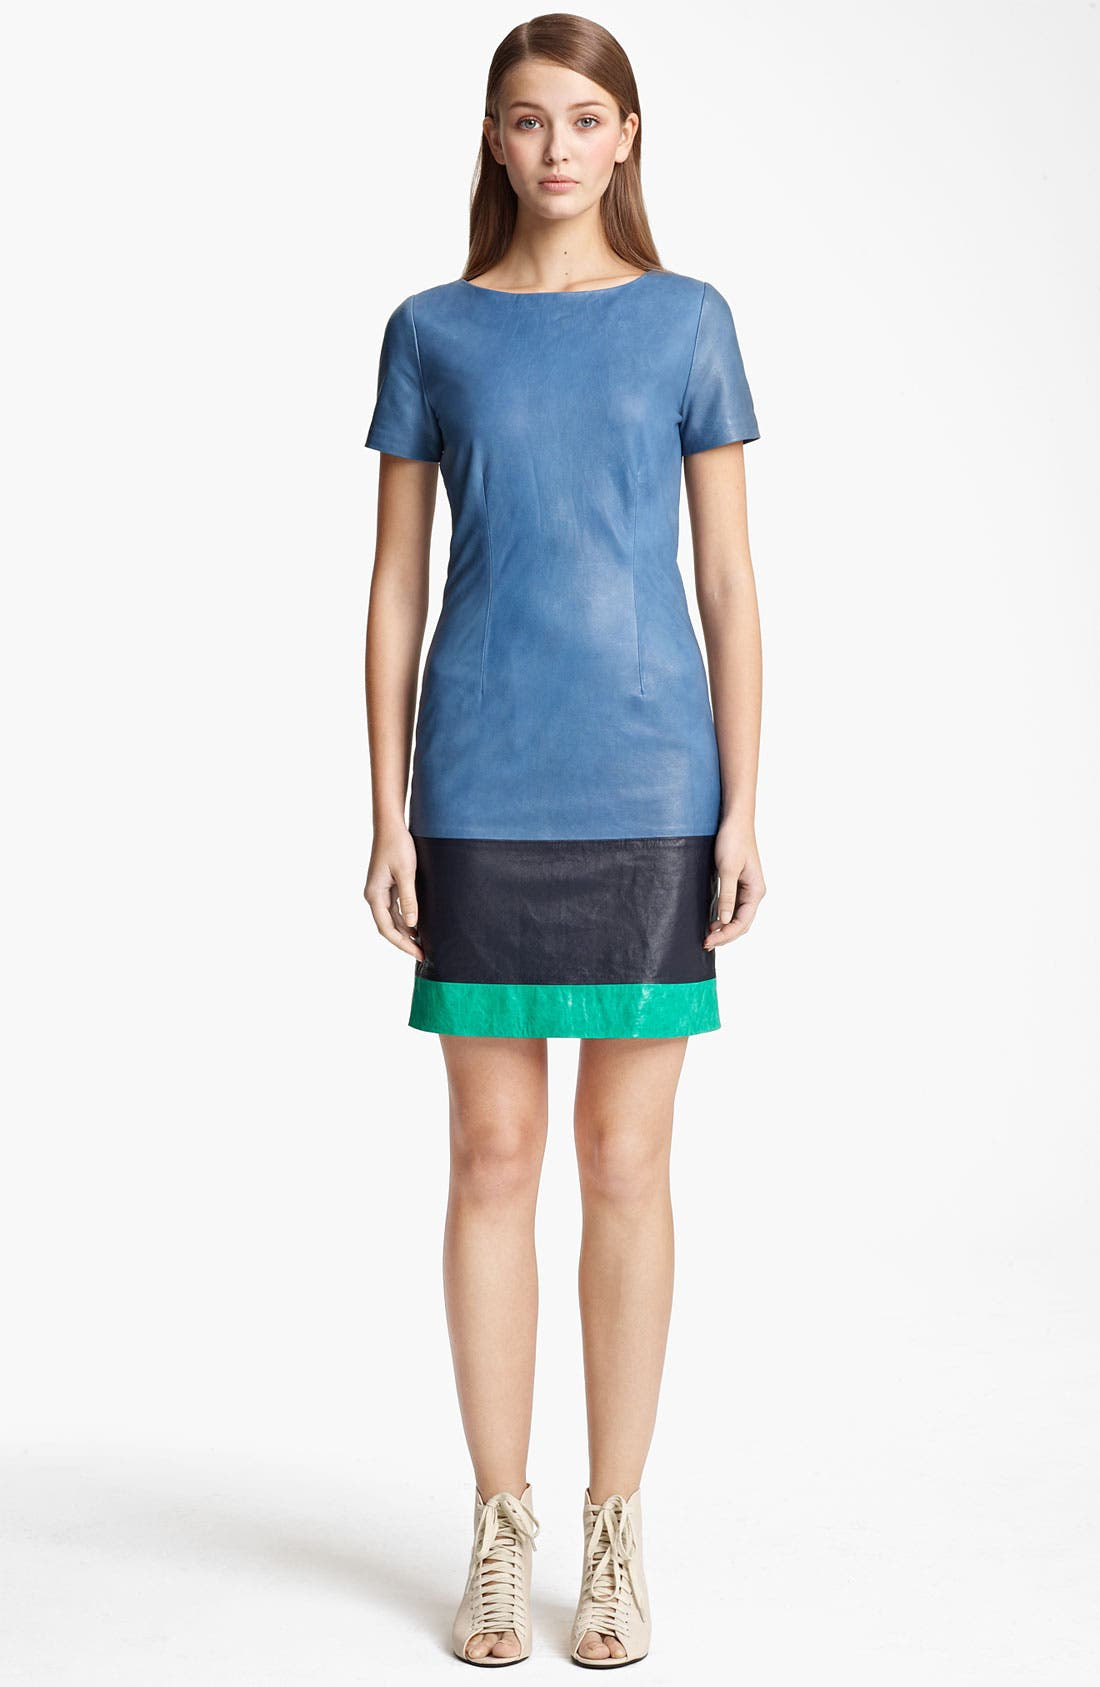 Alternate Image 1 Selected - Band of Outsiders Colorblock Leather Dress